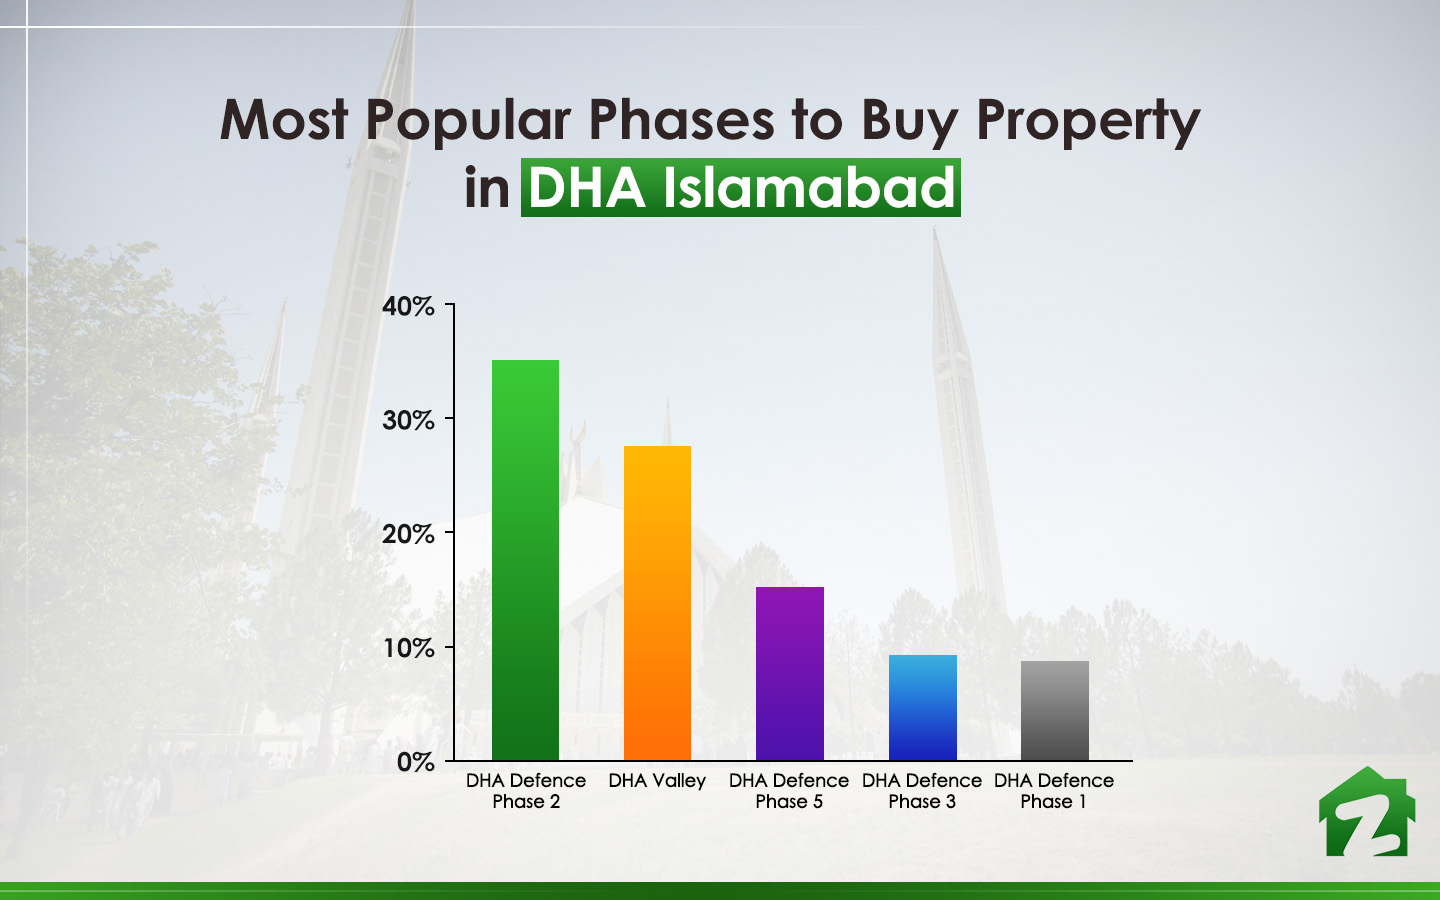 Popular phases to buy property in DHA Islamabad